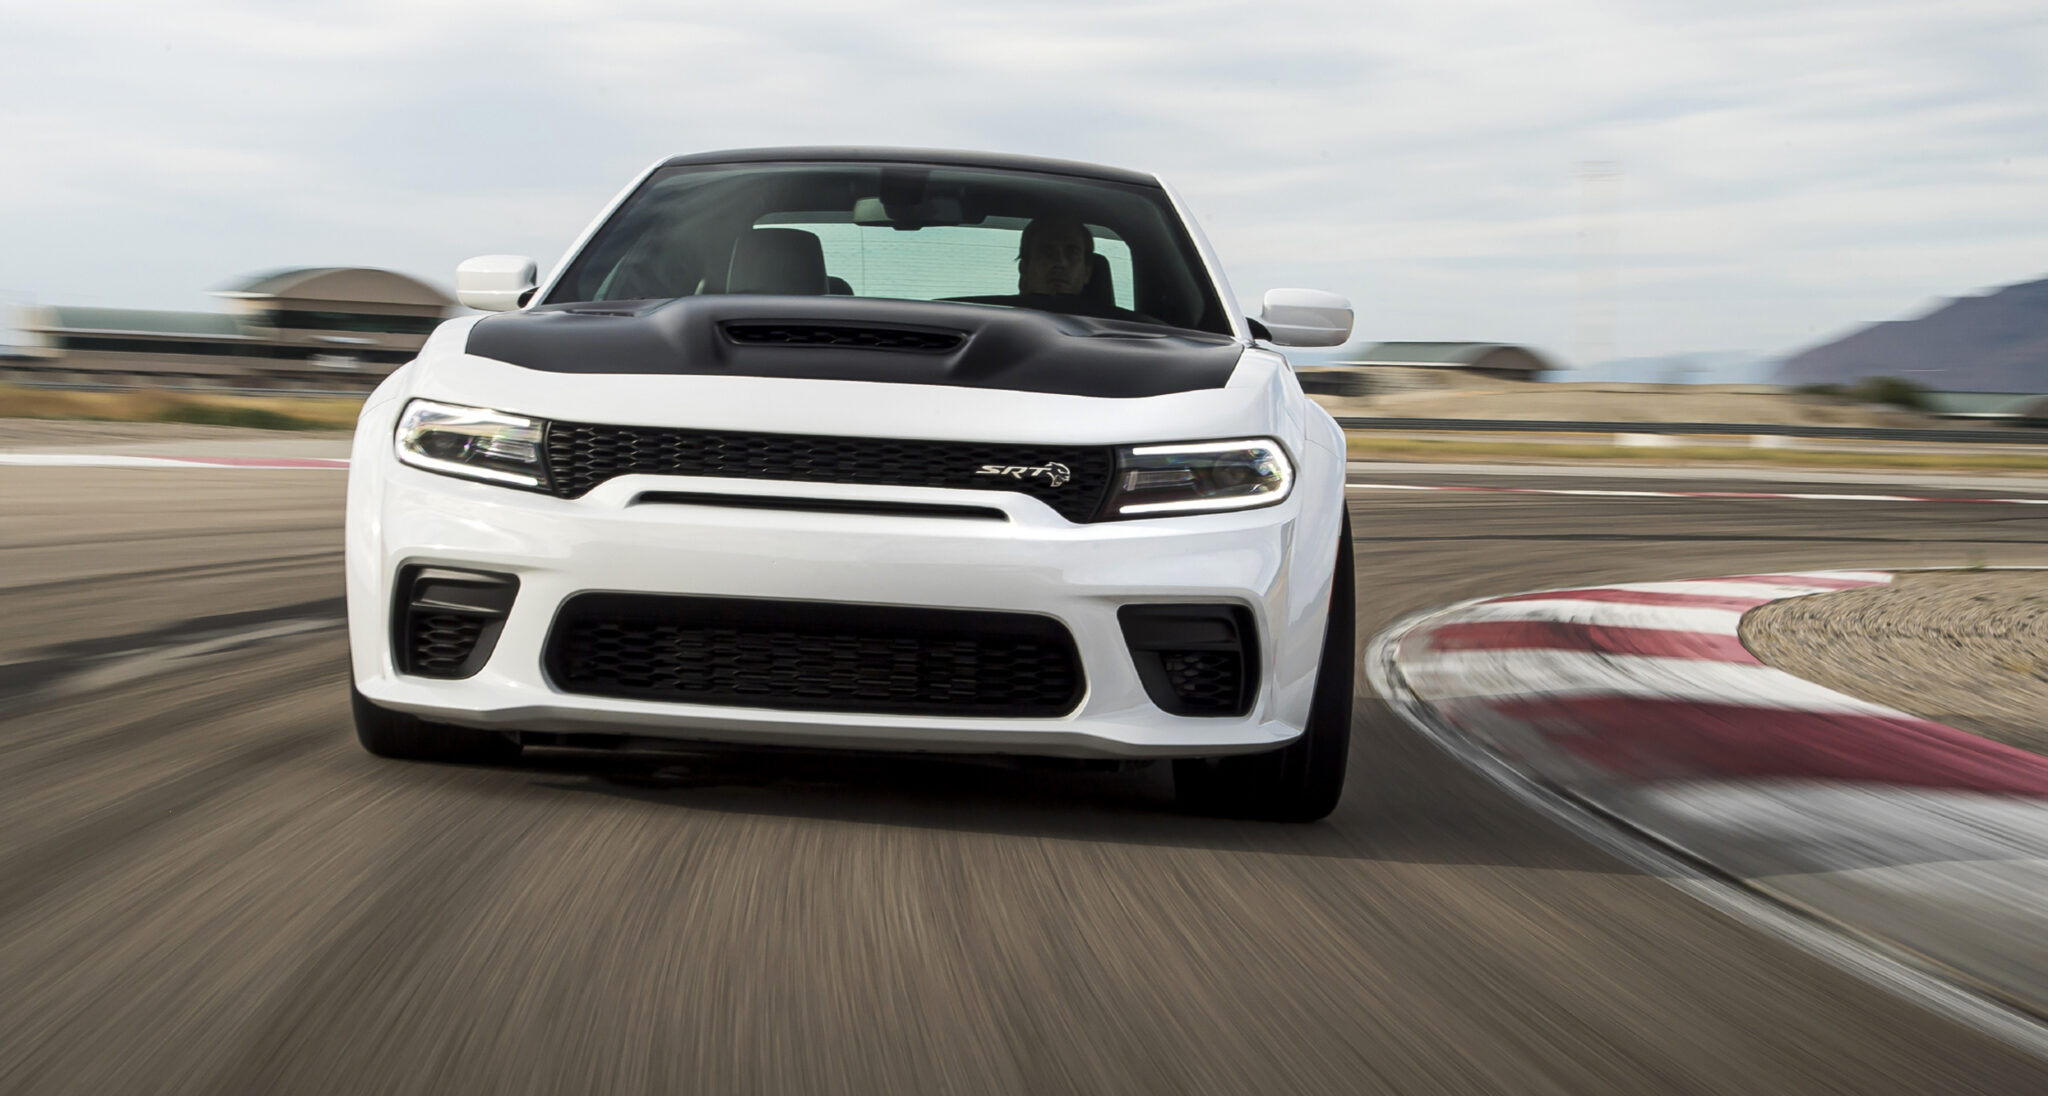 DODGE CHARGER HELLCAT REDEYE JOINS THE PACK